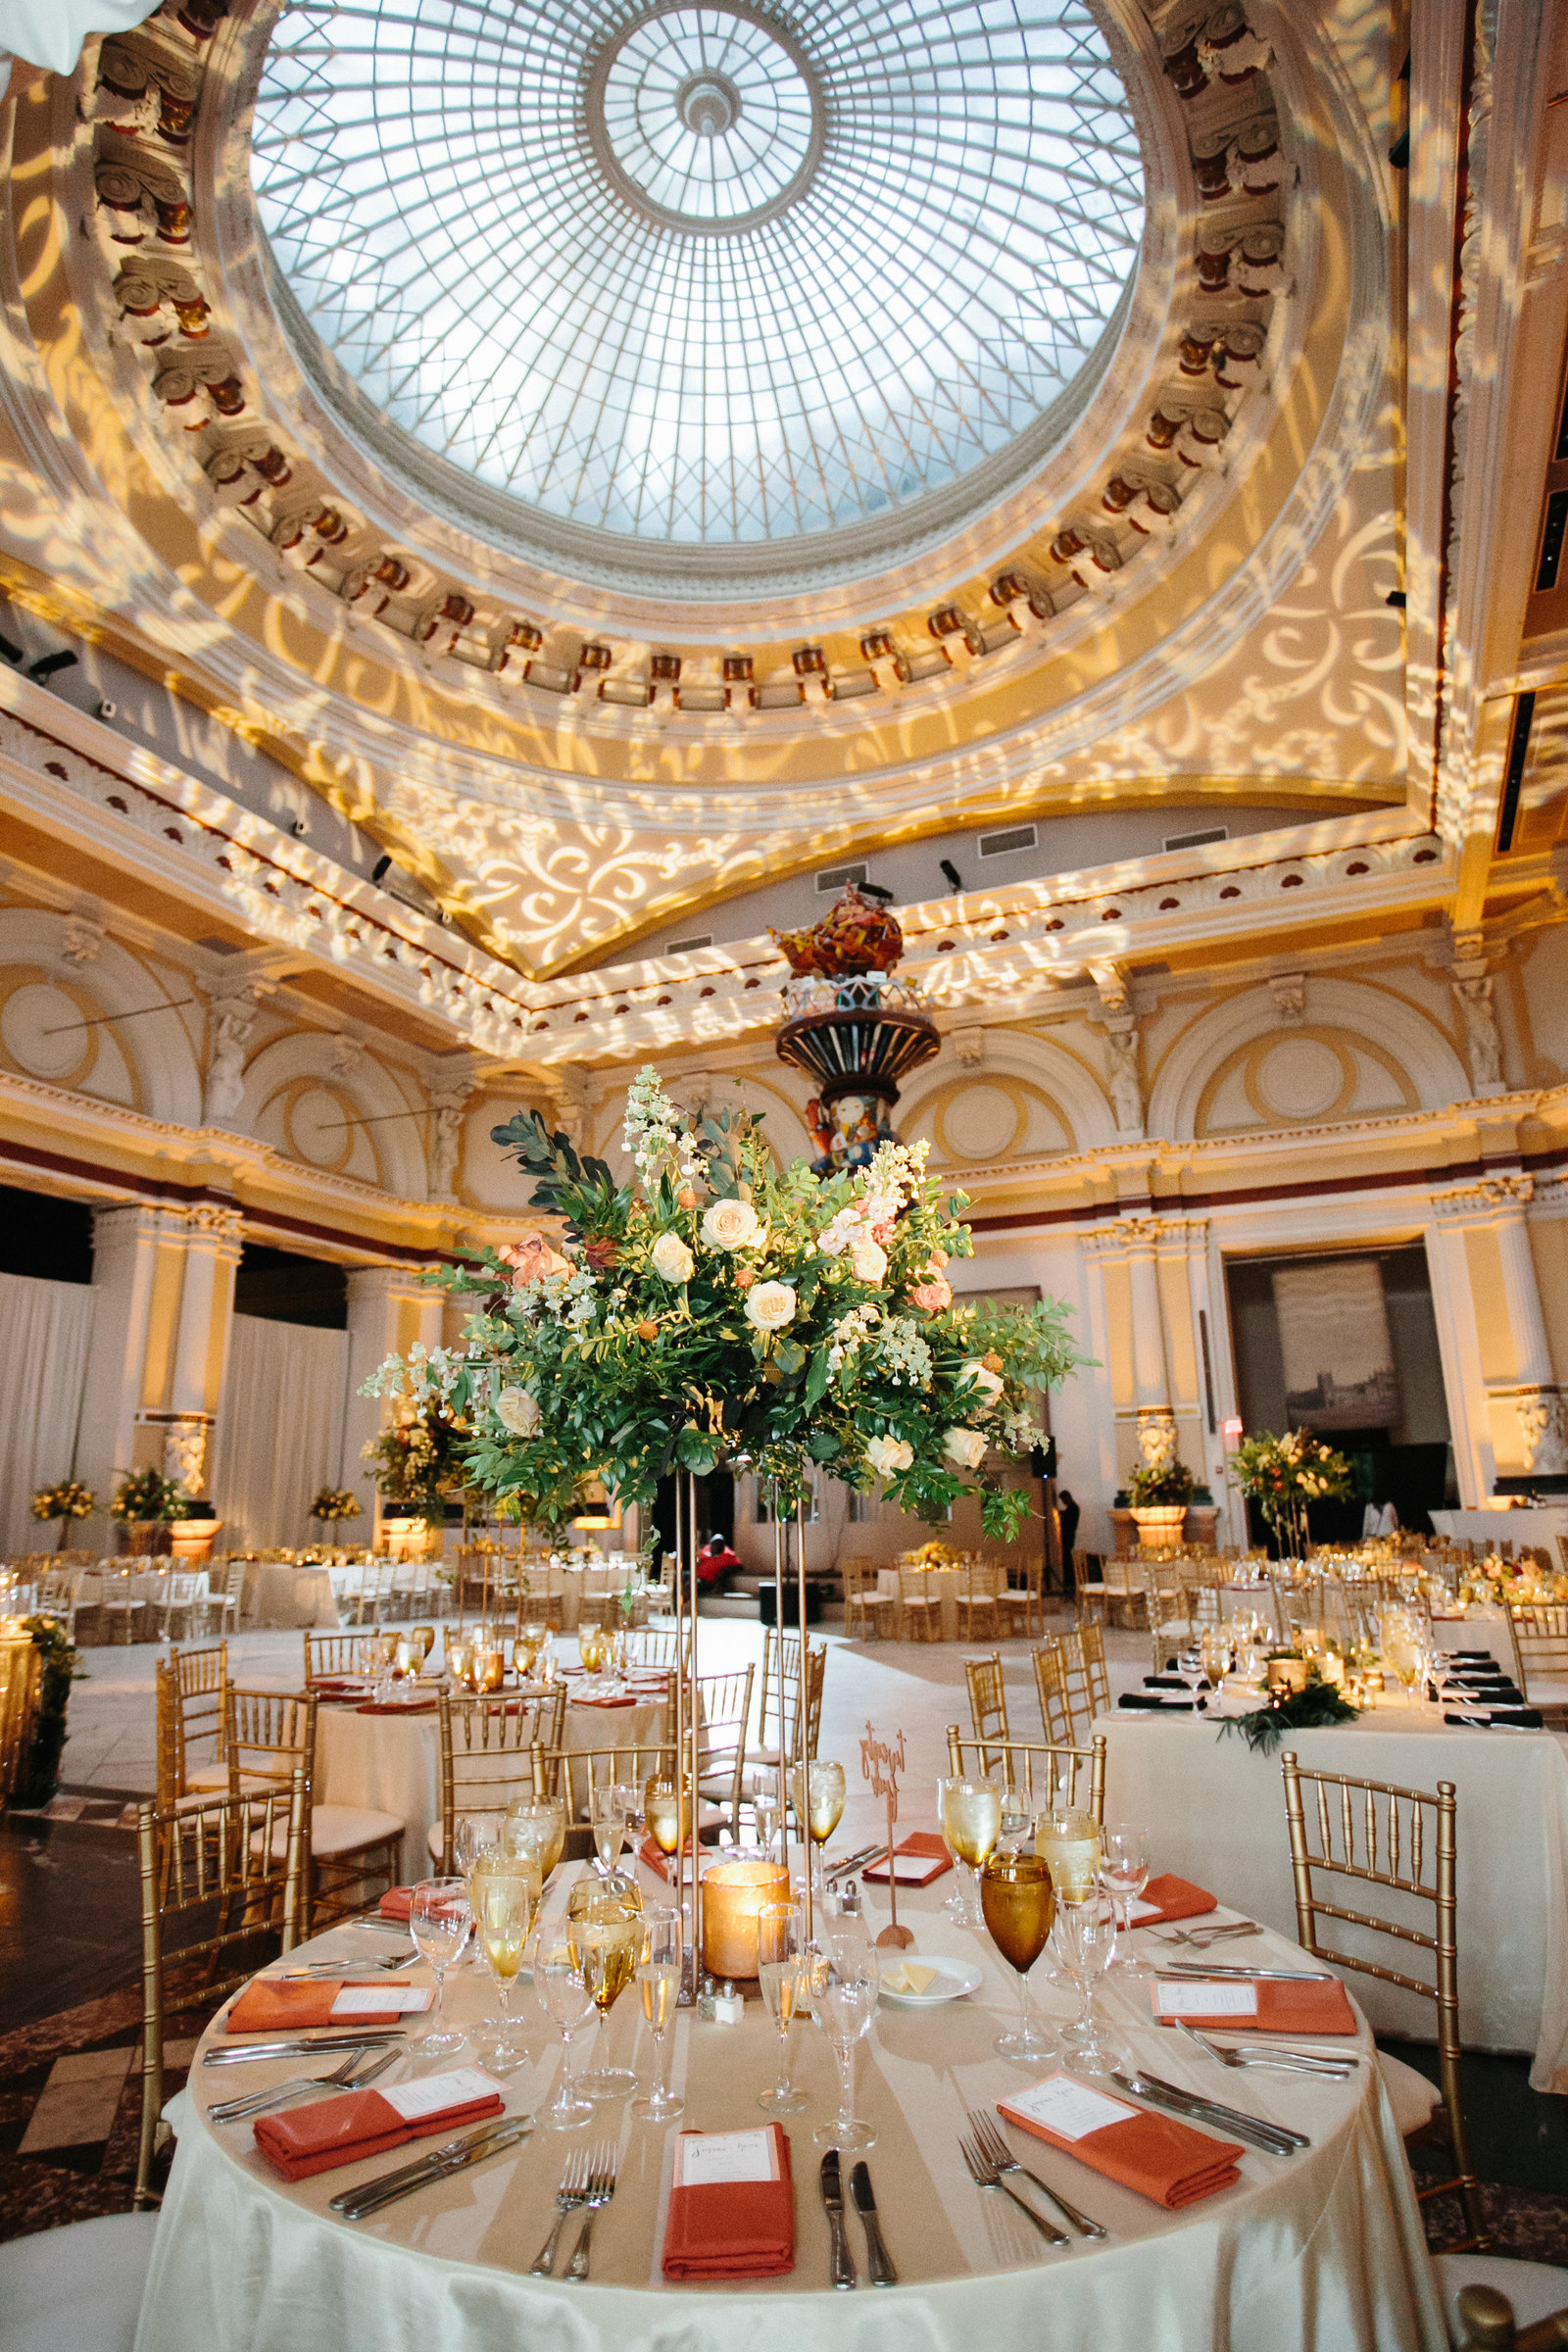 Elegant dining room for this Philadelphia Museum wedding!